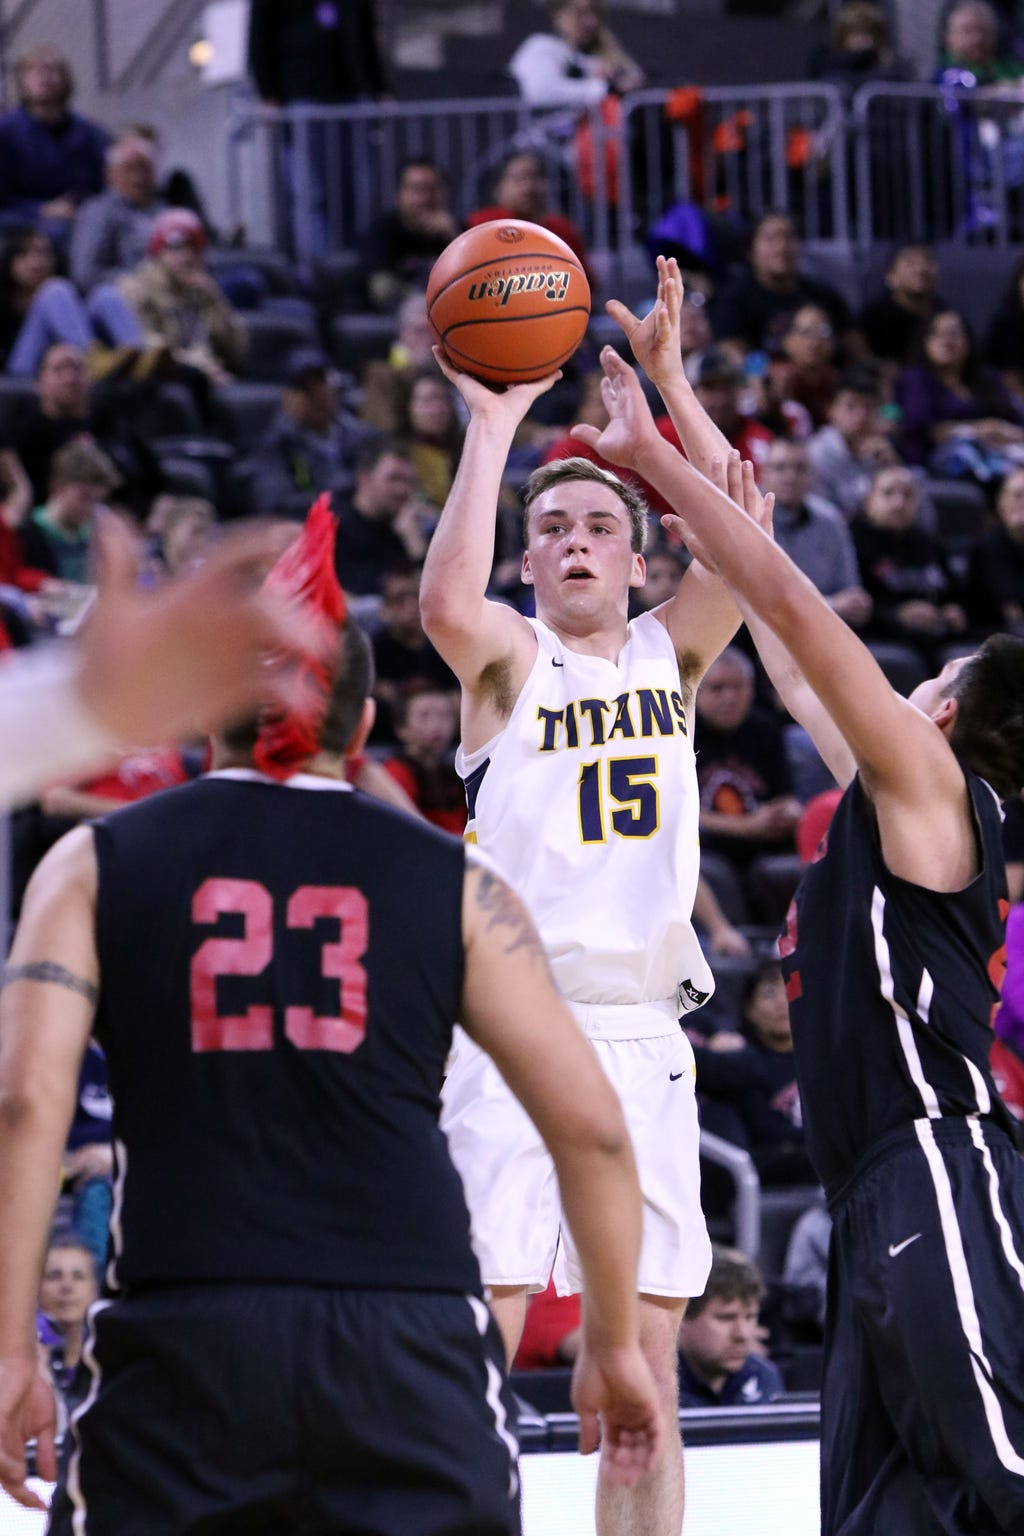 Noah Freidel of Tea Area puts up a shot between several Pine Ridge defenders during Friday's semifinal game at the Premier Center in Sioux Falls.